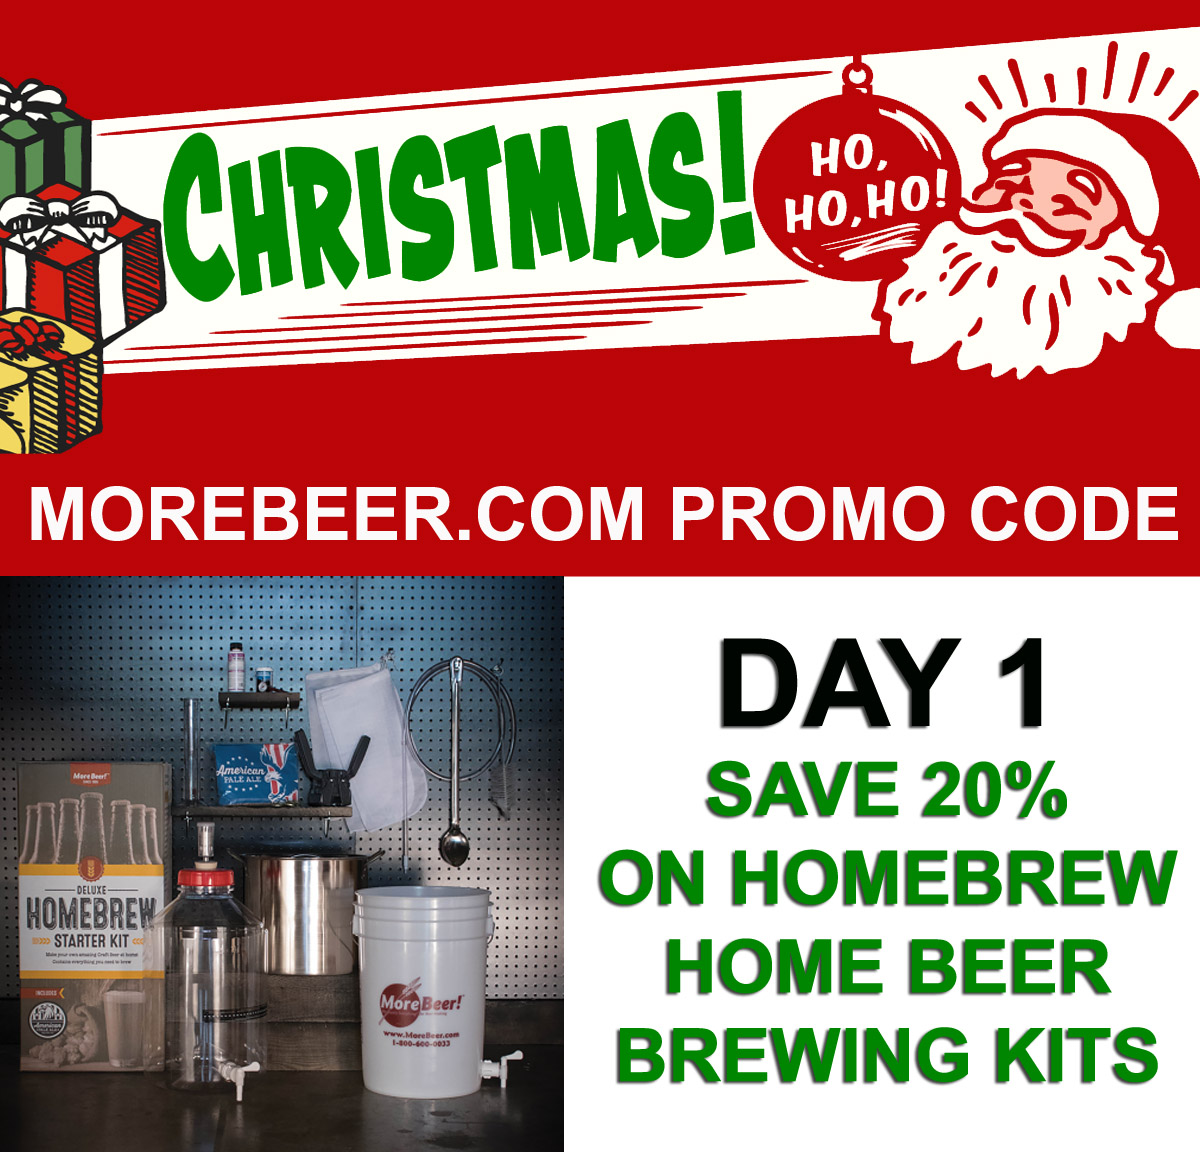 Home Brewer Promo Code for Save 20% On Homebrewing Starter Kits With This MoreBeer.com Promo Code Coupon Code